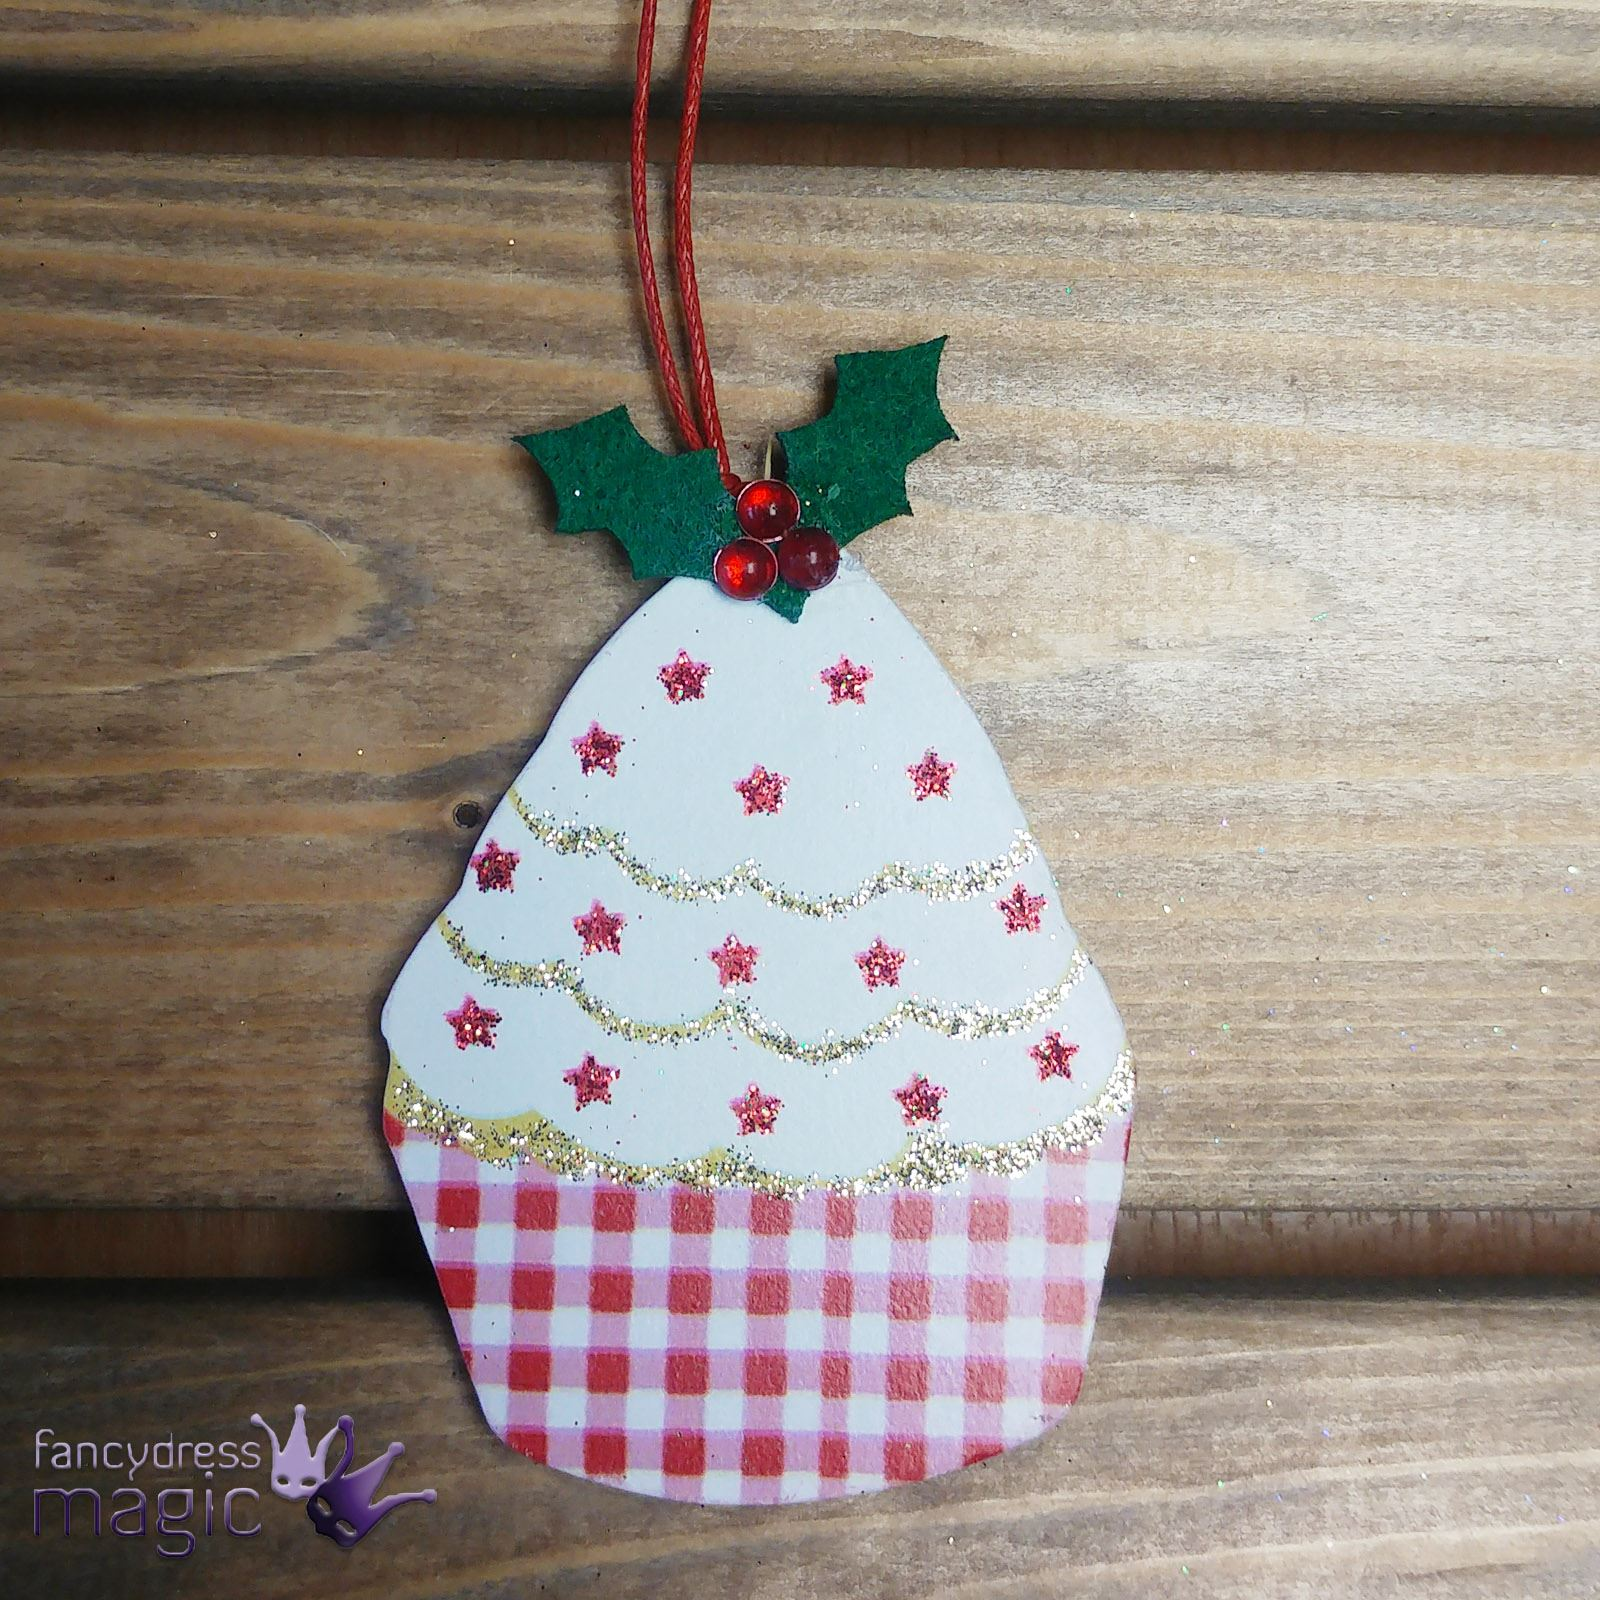 Gisela-Graham-Wooden-Cake-Bake-Glitter-Hanging-Christmas-Xmas-Tree-Decoration